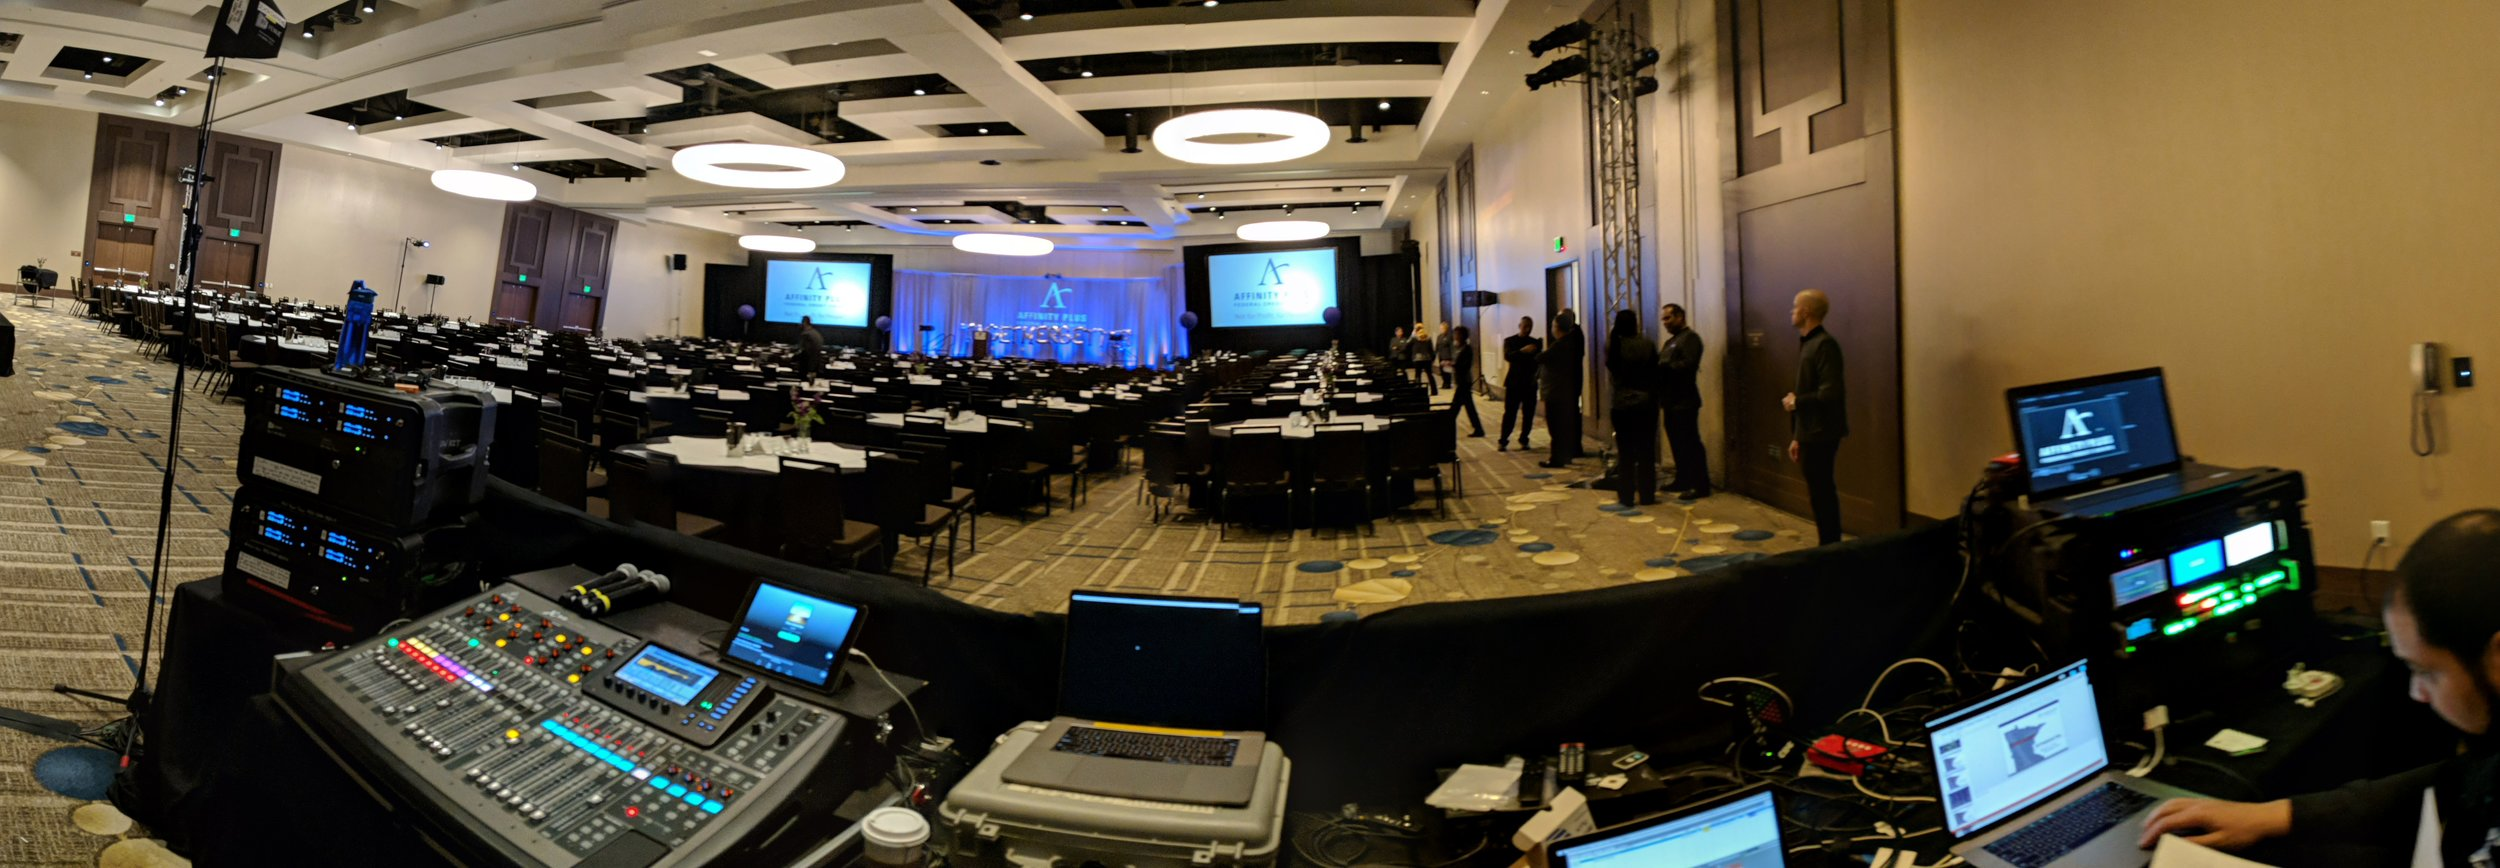 Picture of AV for You tech table at the JW Marriott in Bloomington, MN